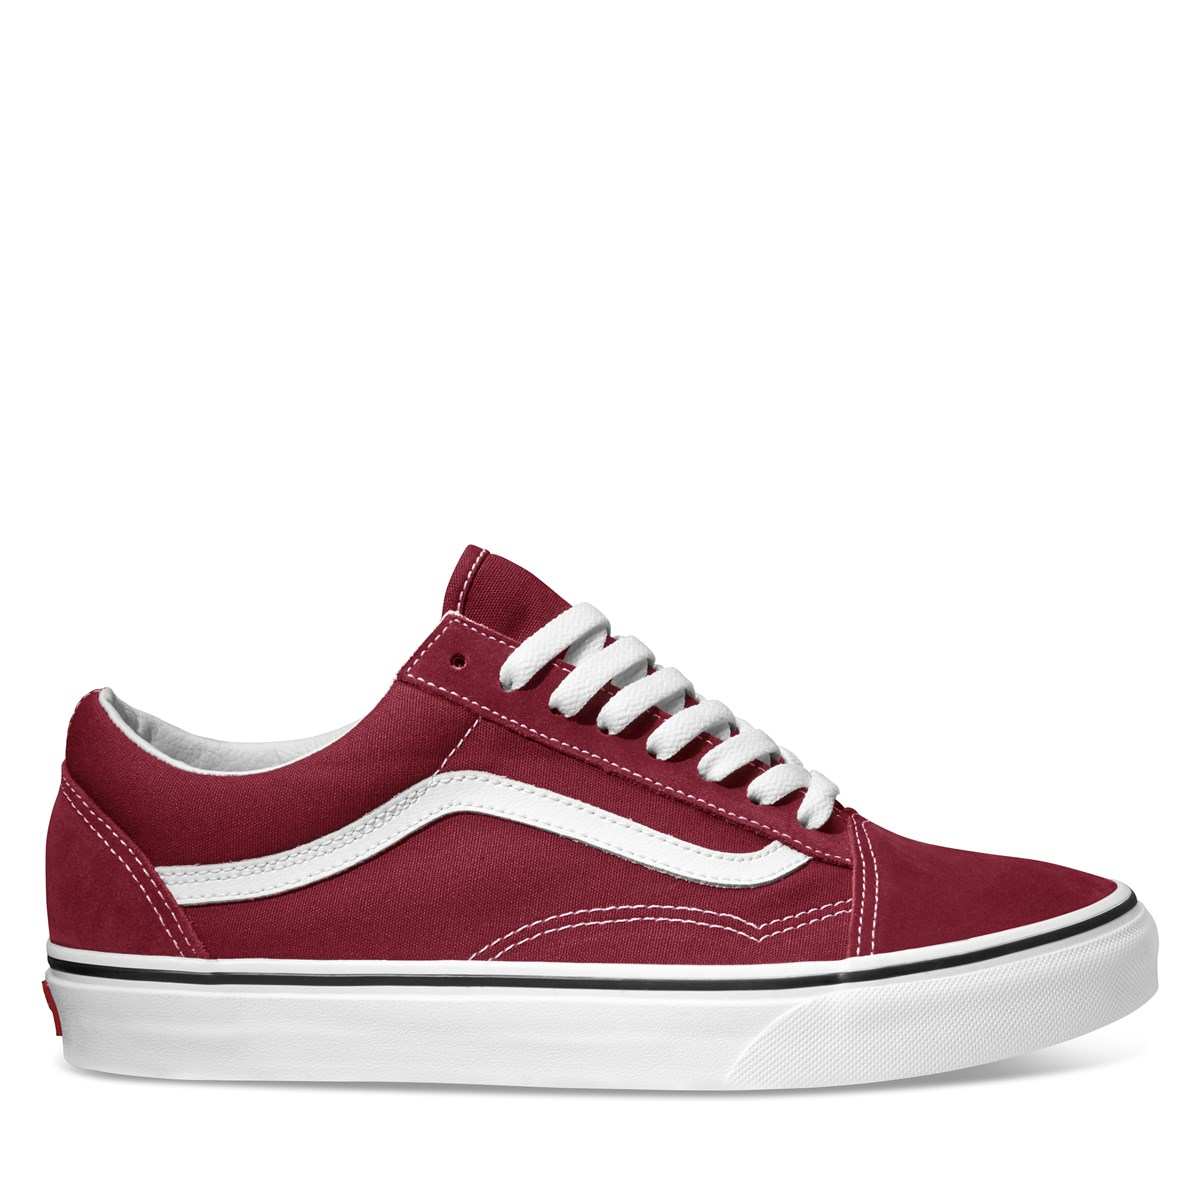 Men's Old Skool Rumba in Red